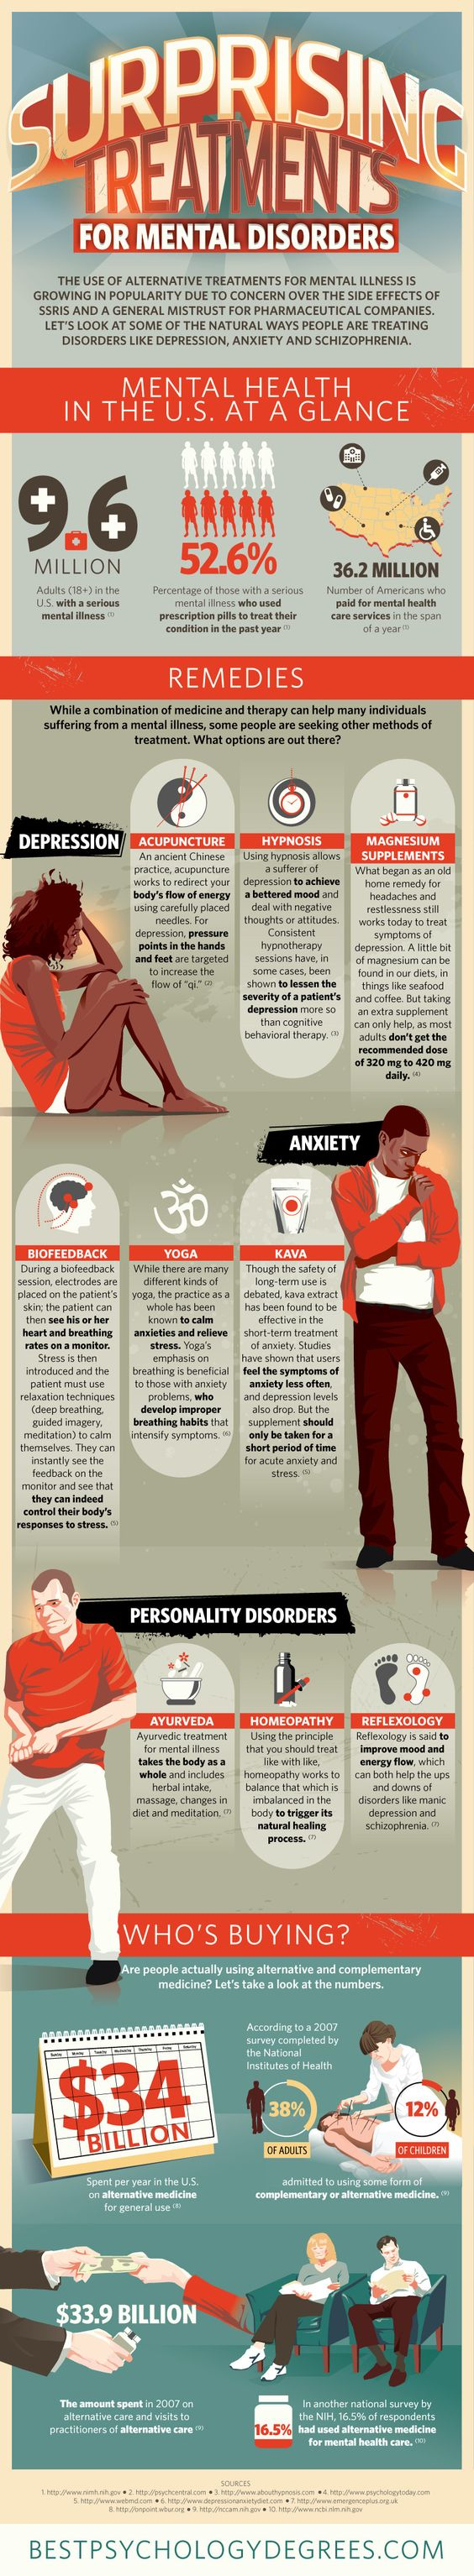 Treatment for mental disorder Infographic